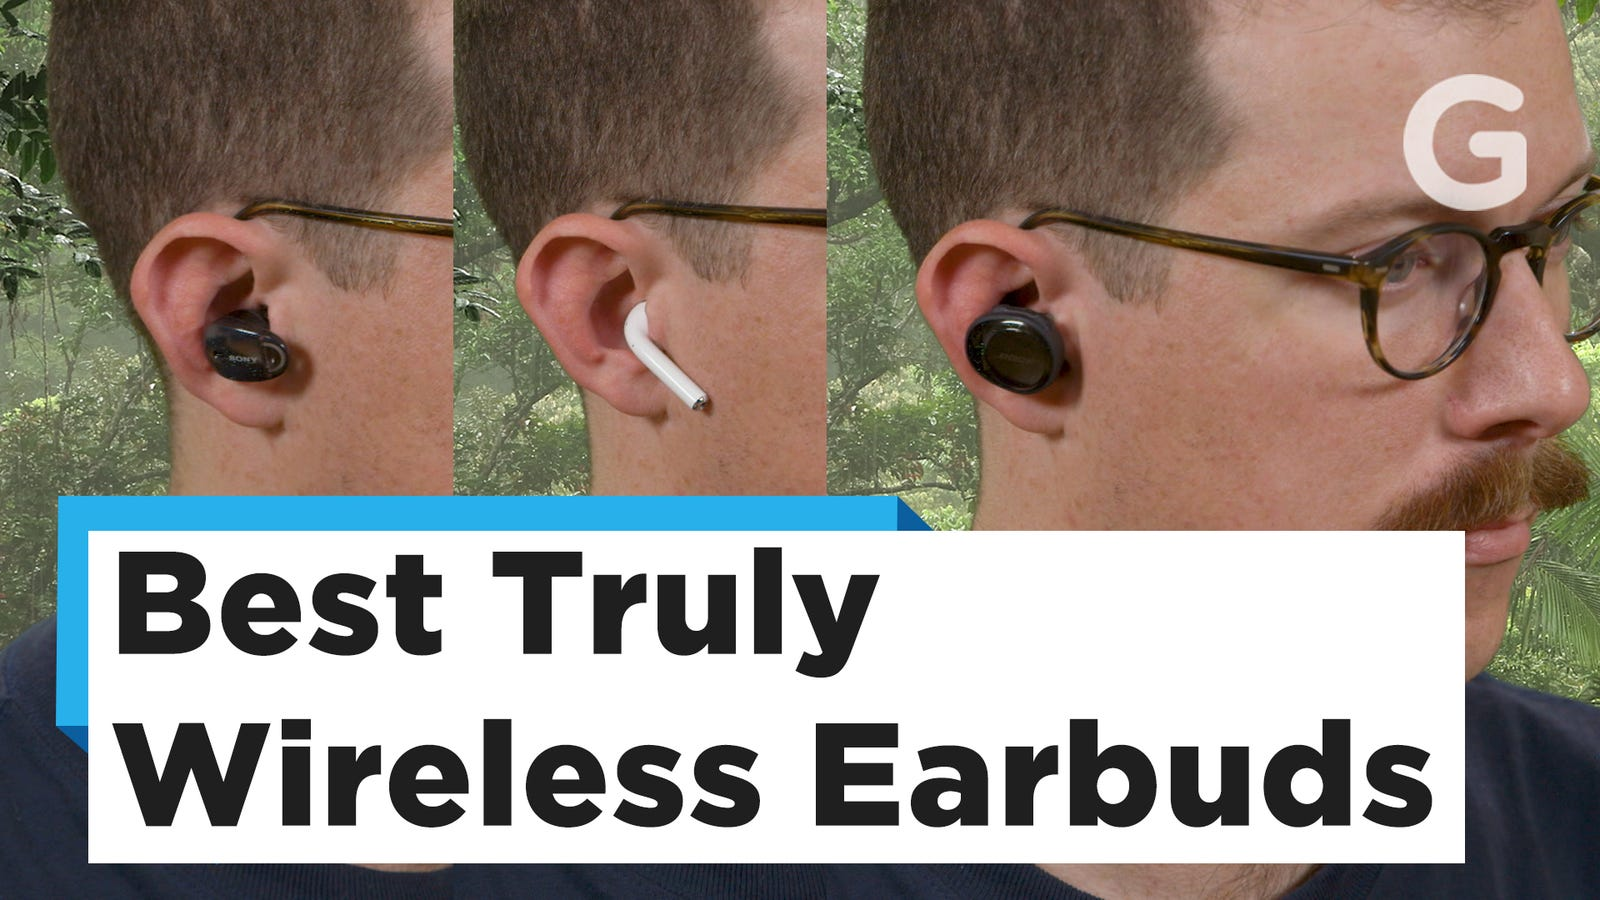 wireless bluetooth headphones lg - The Truly Wireless Earbuds You Should Buy Instead of AirPods